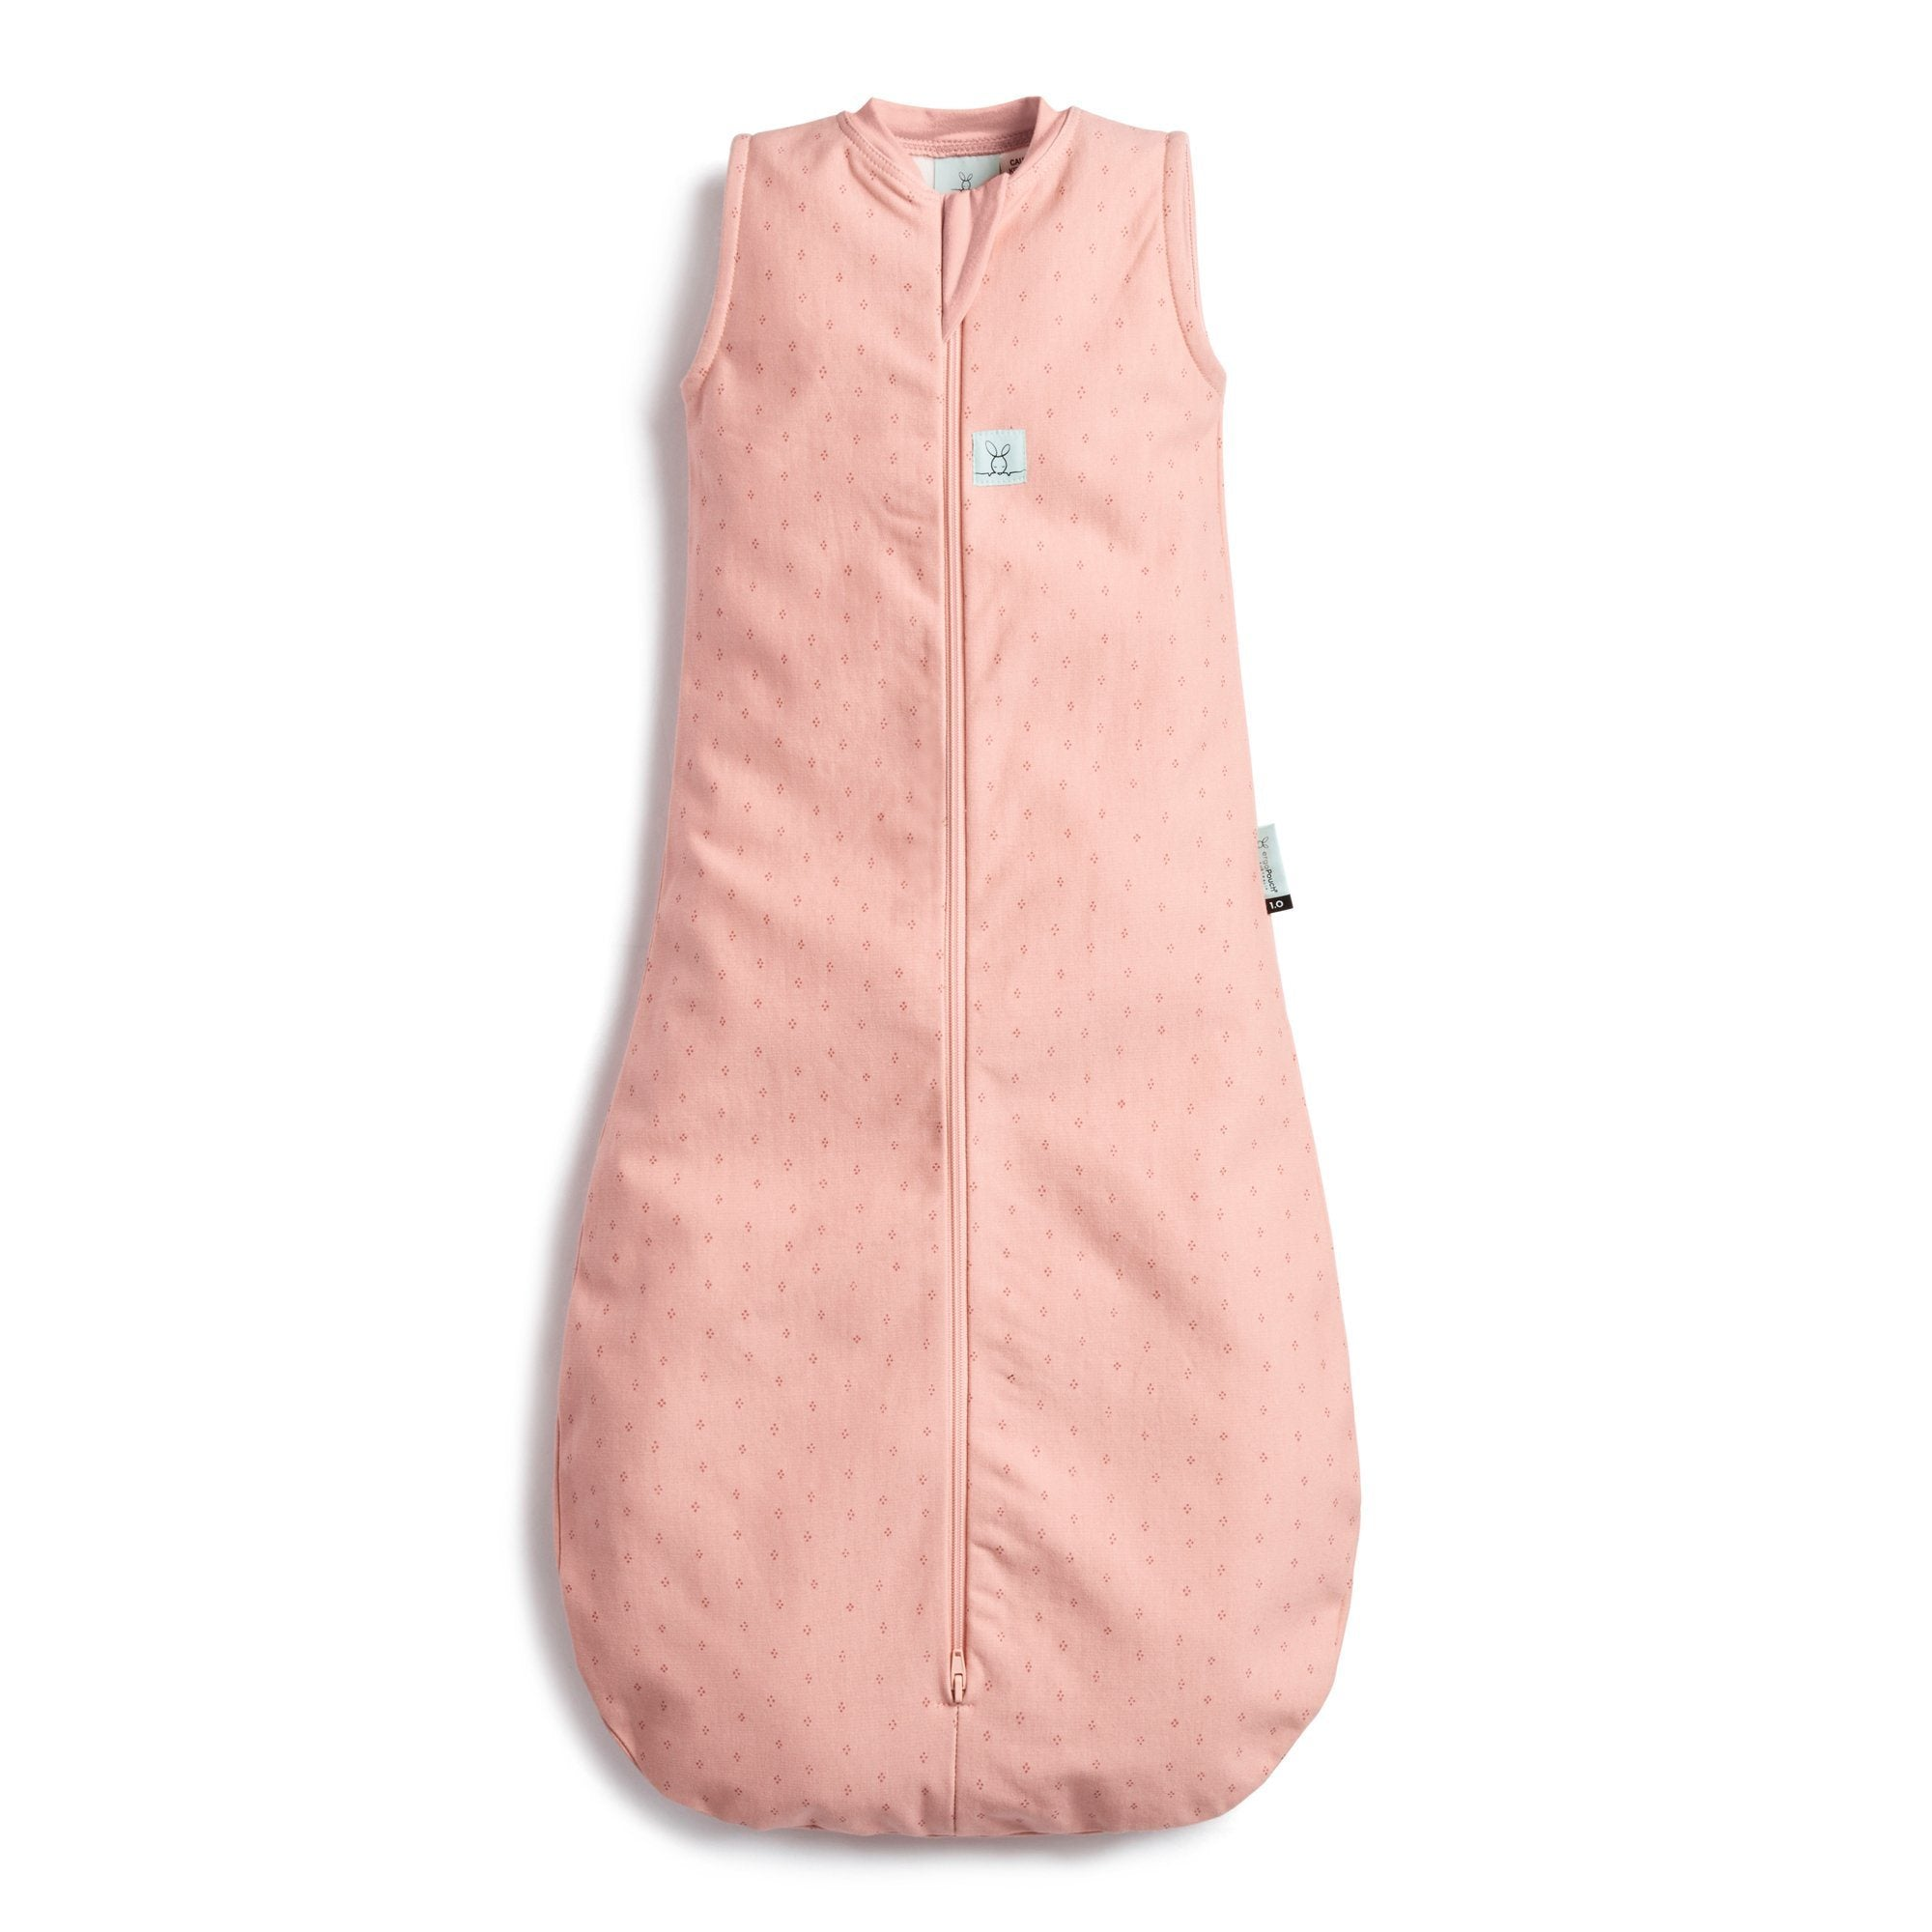 Jersey Bag 0.2 tog (Berries)